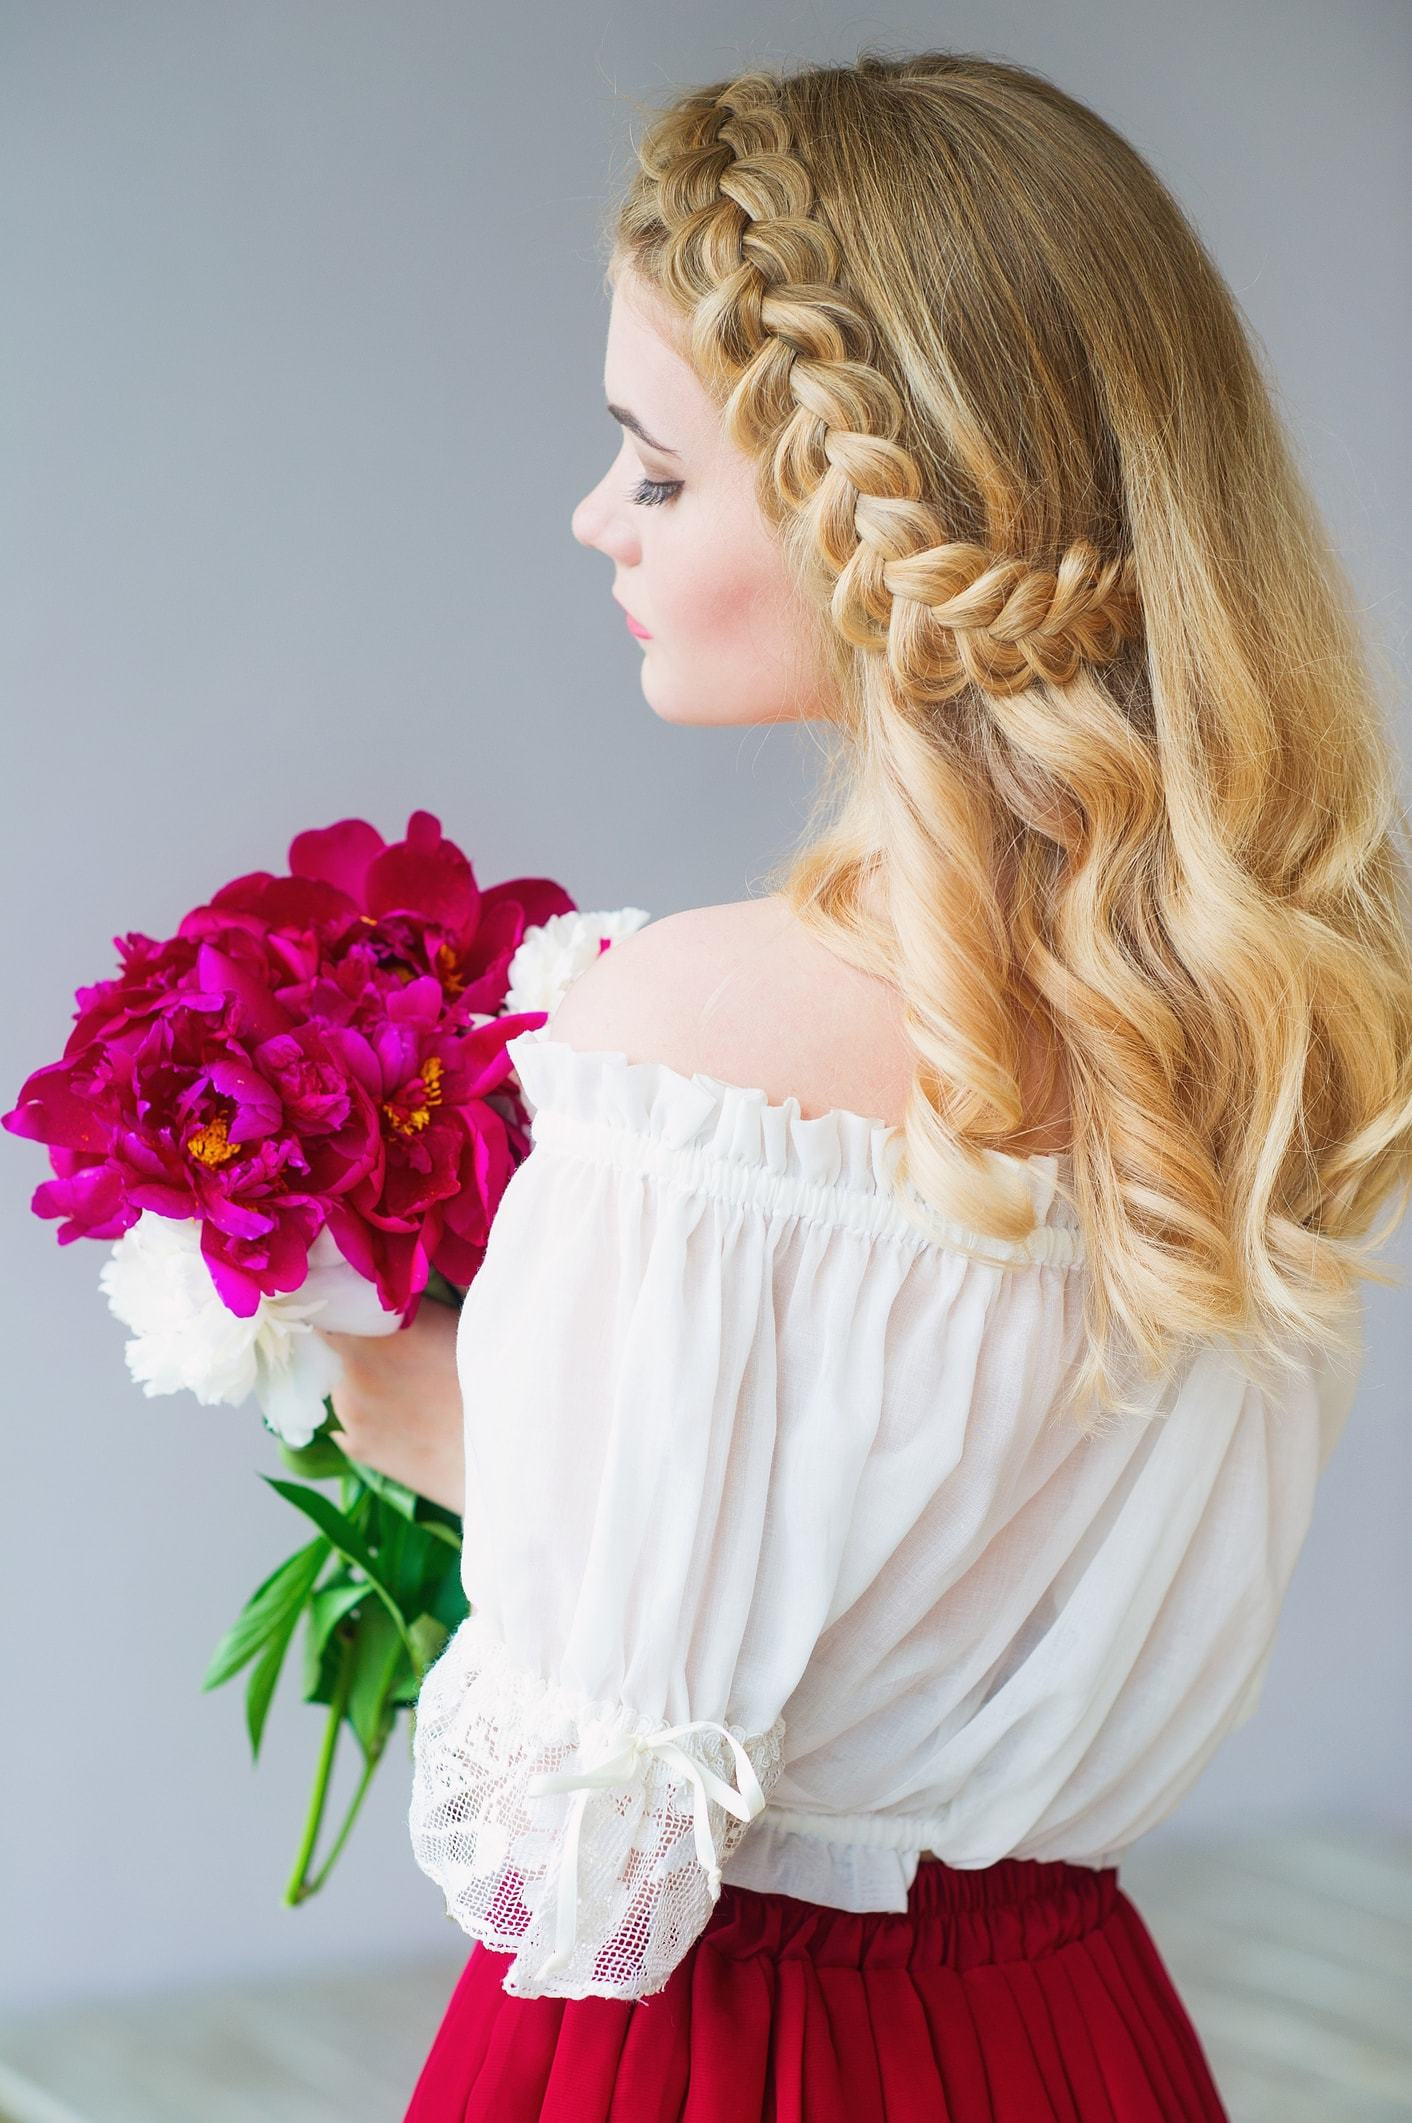 19 Beautiful Flower Girl Hairstyles For Girls Of All Ages